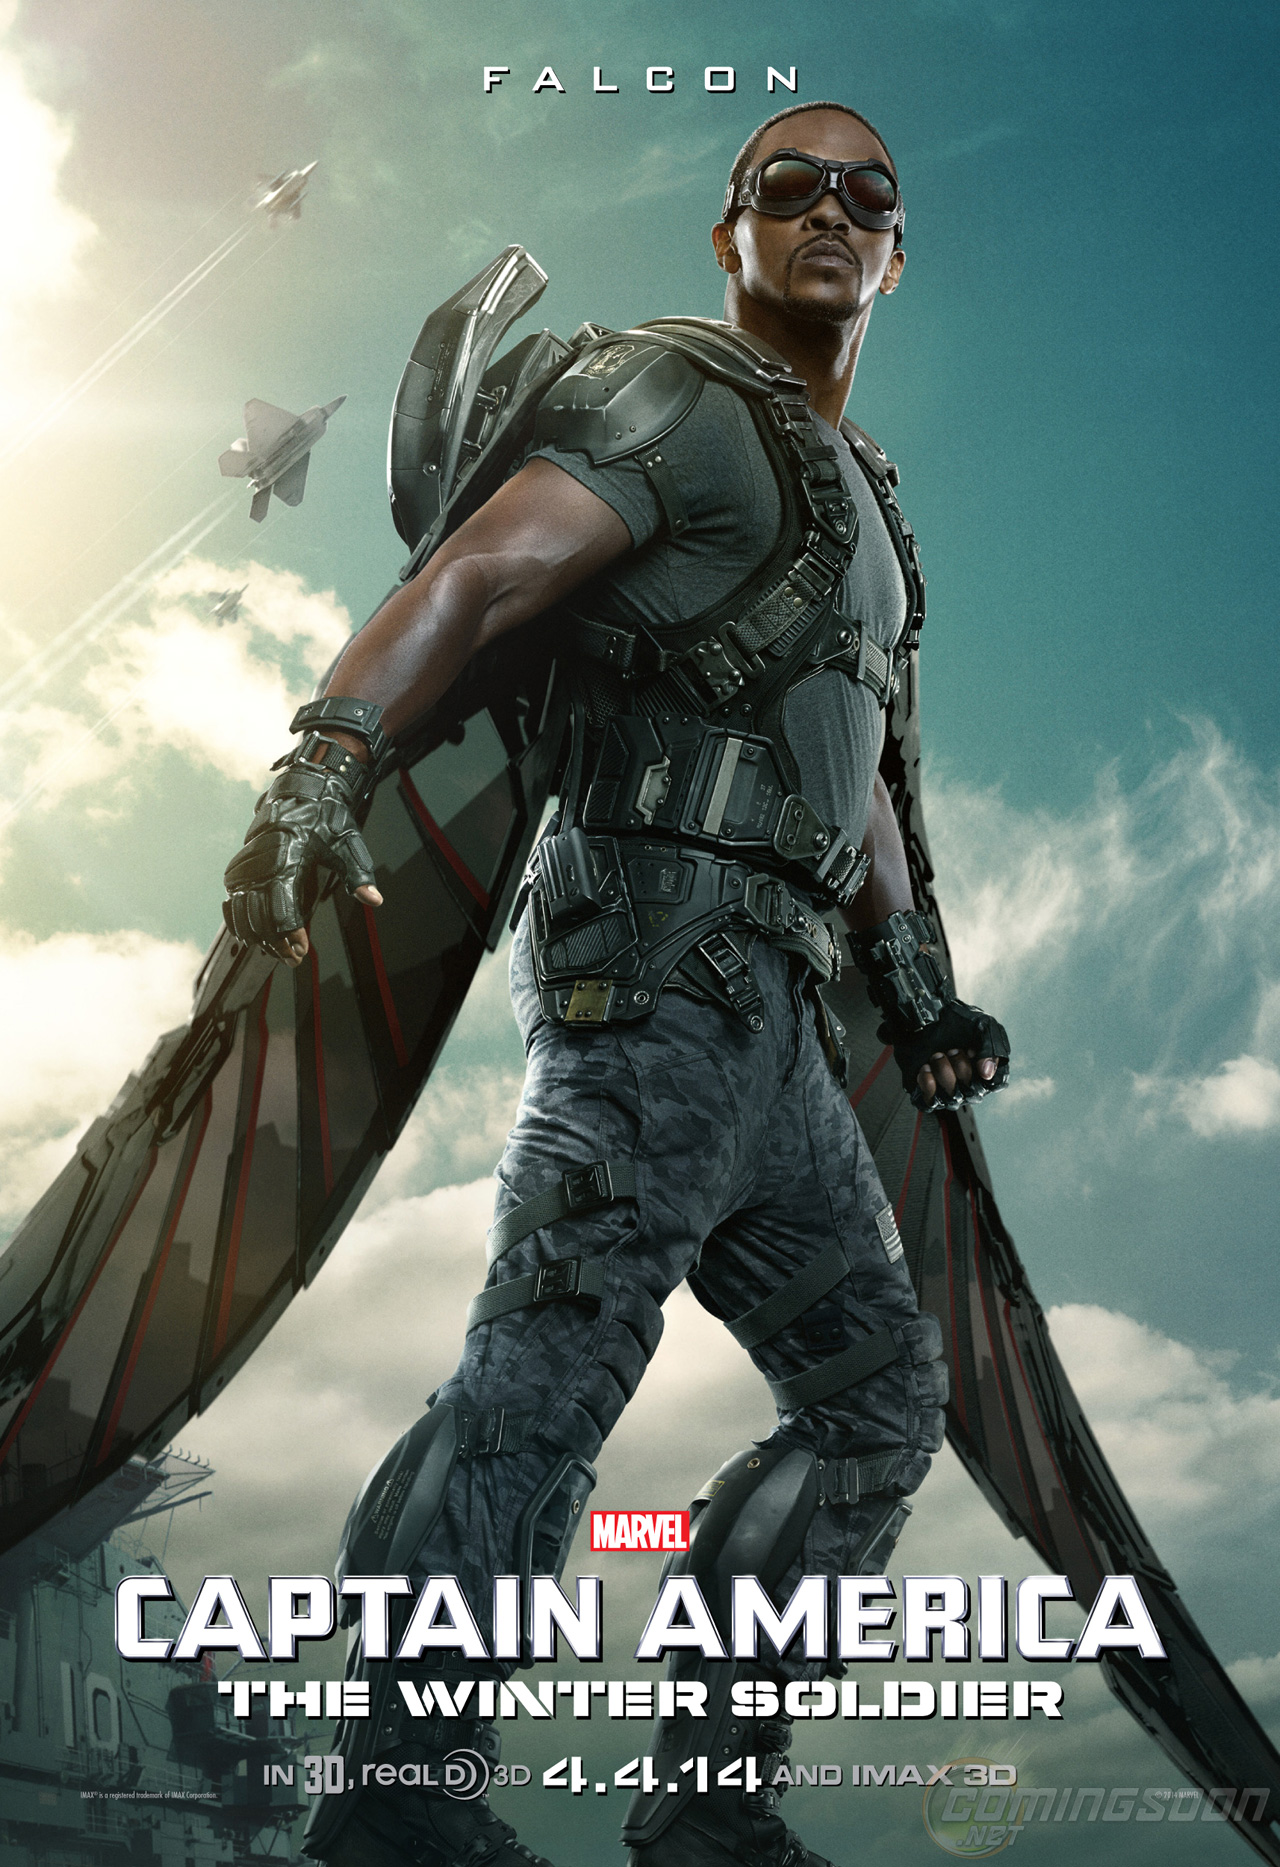 Exclusive: The Falcon Character Poster for Captain America ...